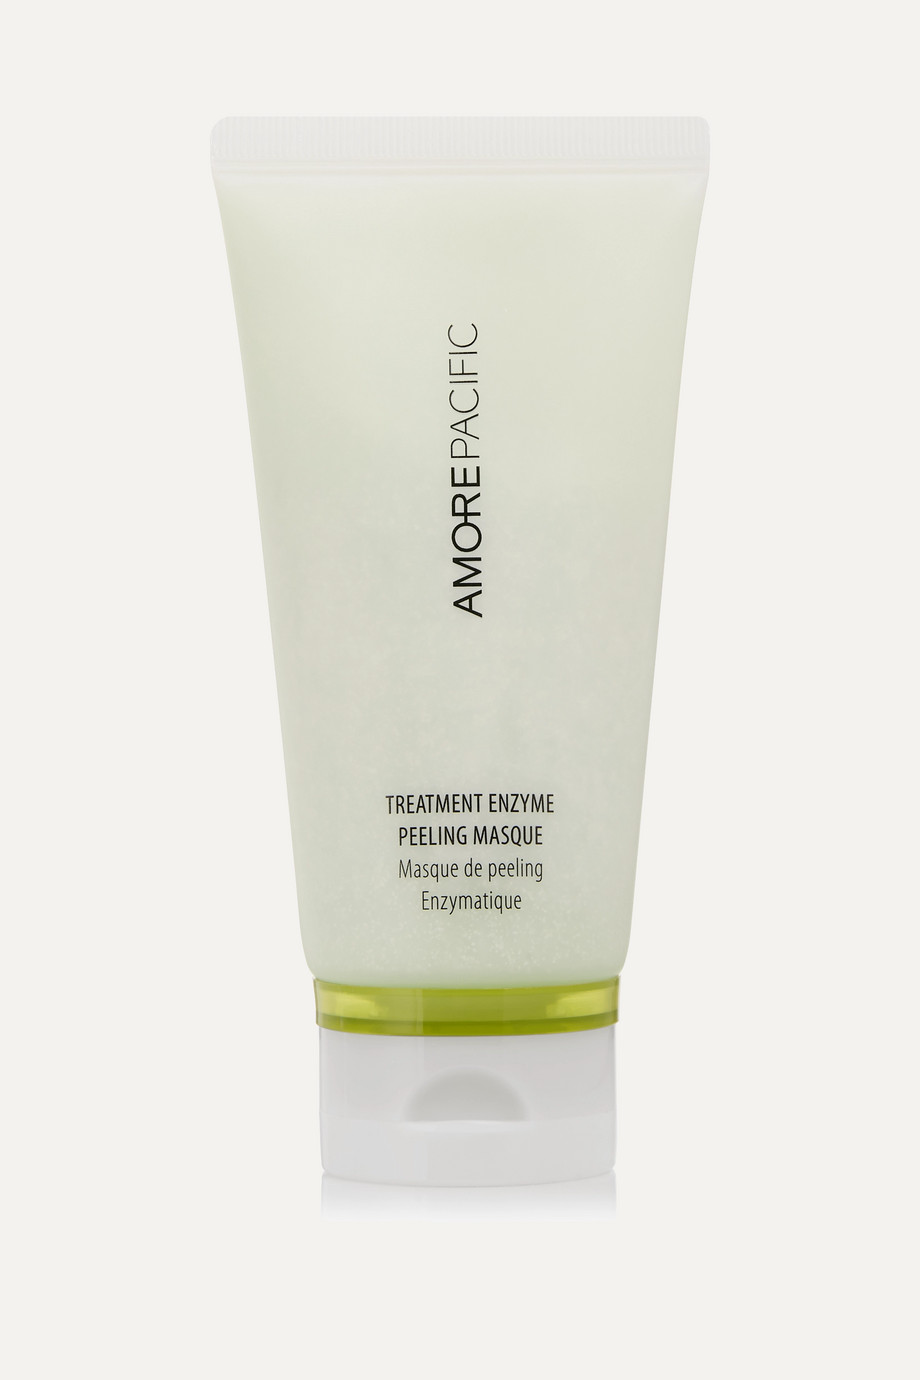 AMOREPACIFIC Treatment Enzyme Peeling Masque, 80ml